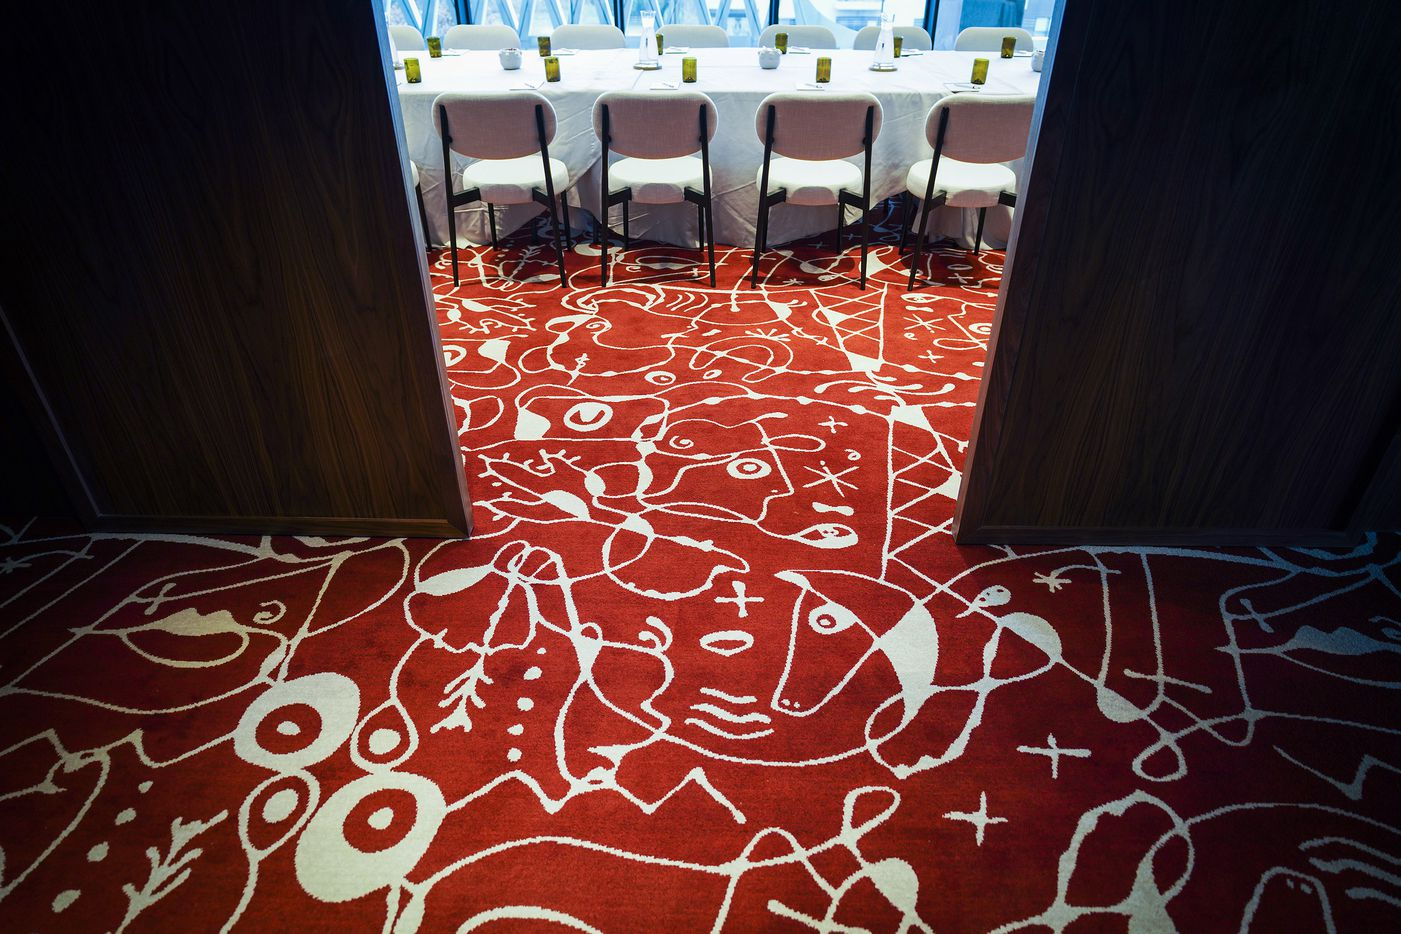 Texas themed carpet runs into a meeting room at the new the Virgin Hotels Dallas on Monday, Dec. 16, 2019, in Dallas. The newly built hotel is at 1445 Turtle Creek in the Dallas Design District.